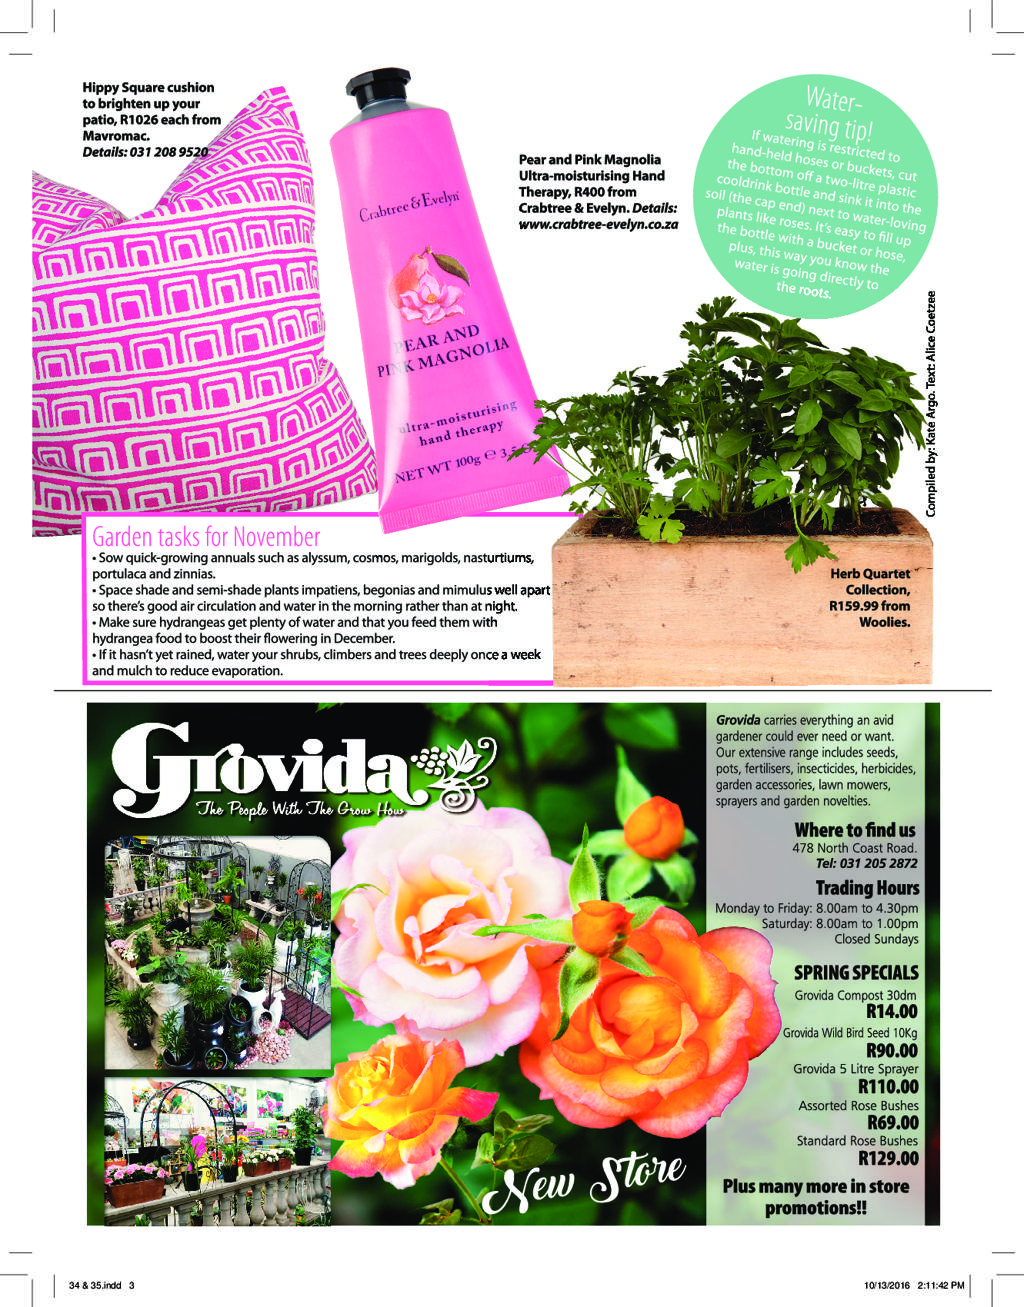 durban-get-it-magazine-november-2016-epapers-page-37